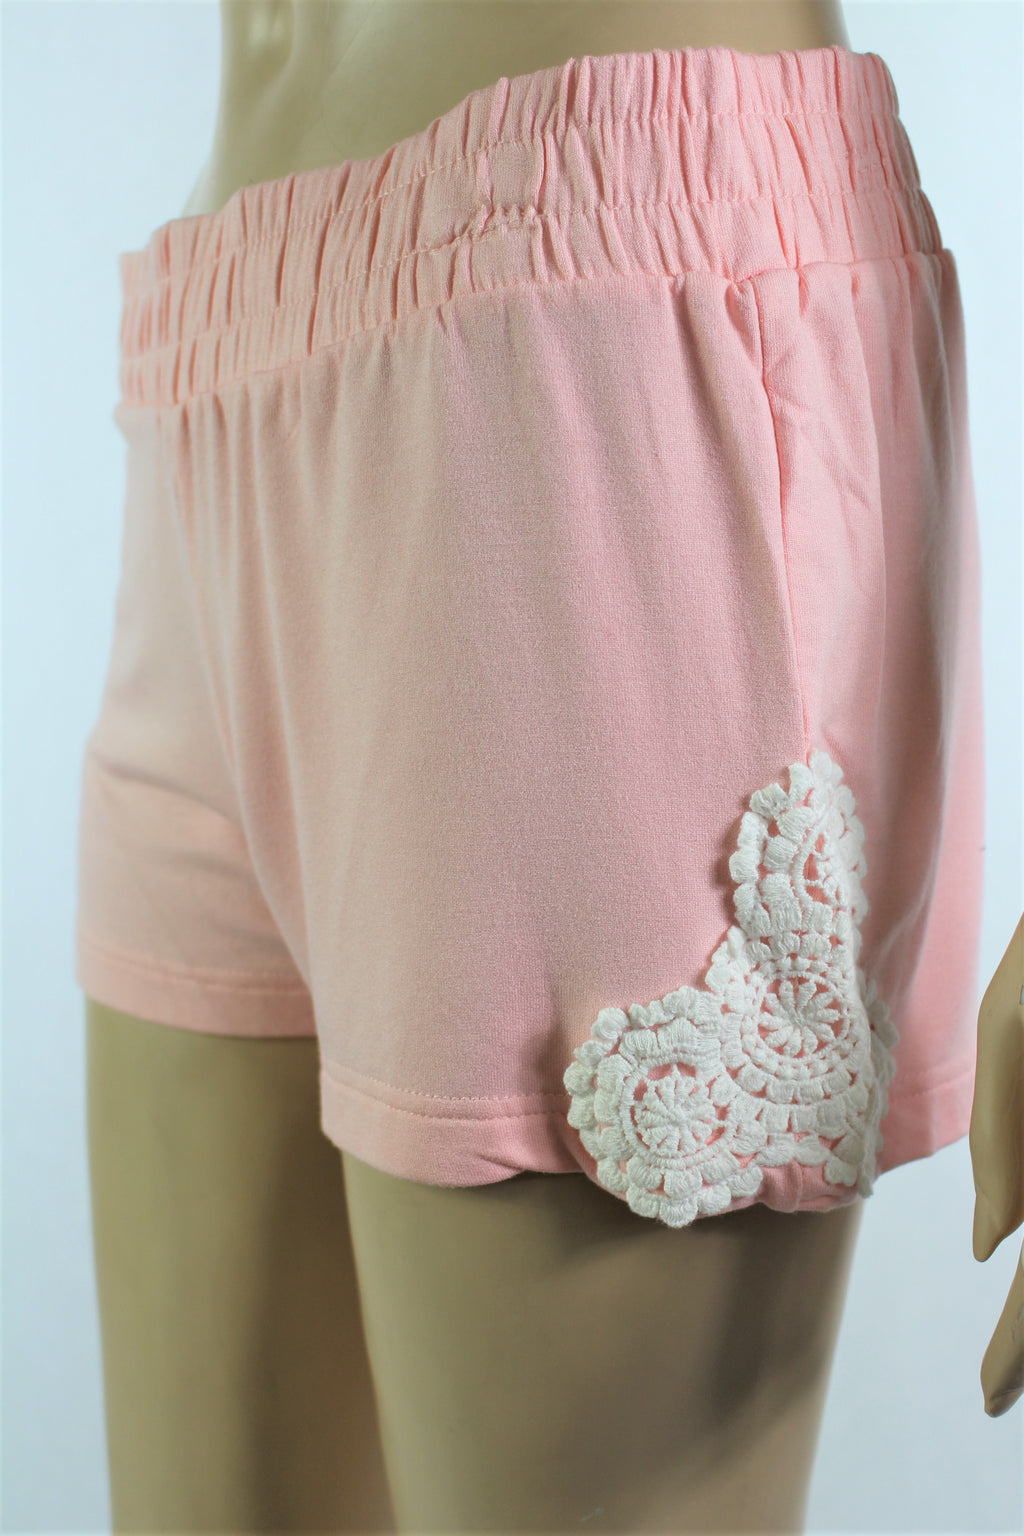 Women's Mini Shorts with Crochet Details